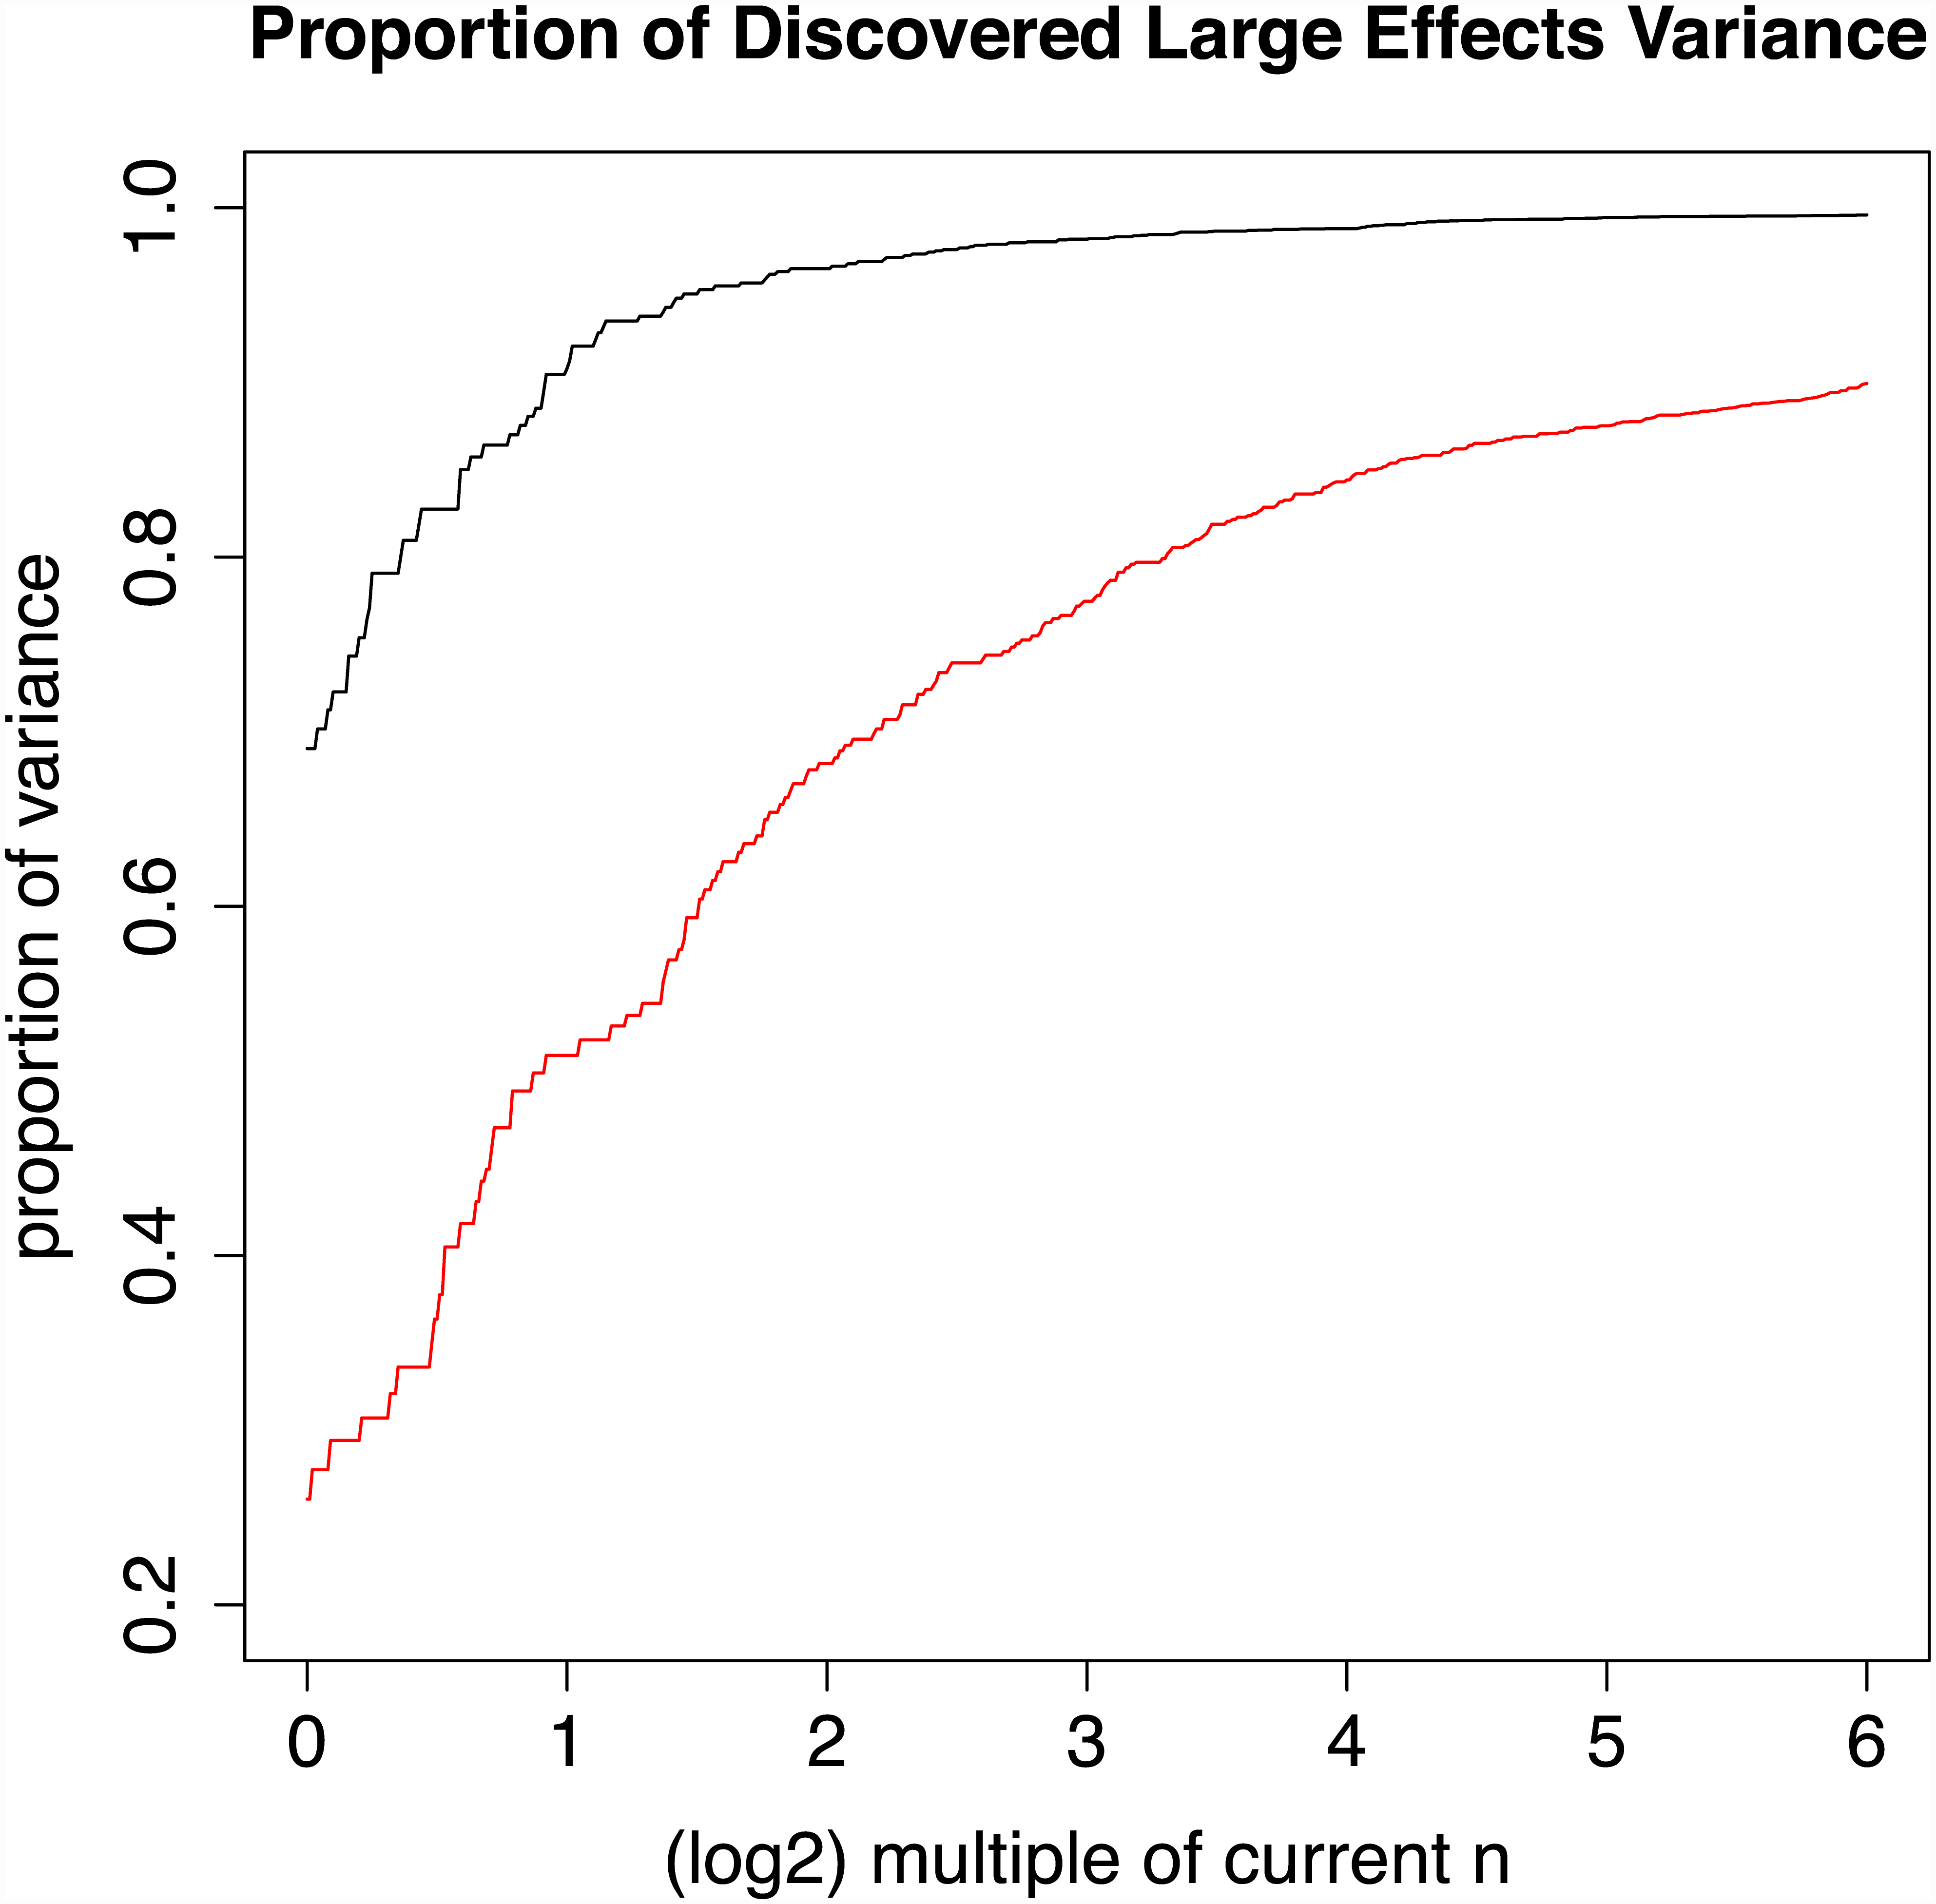 Power as a multiple of current effective sample size for Crohn's disease and schizophrenia.